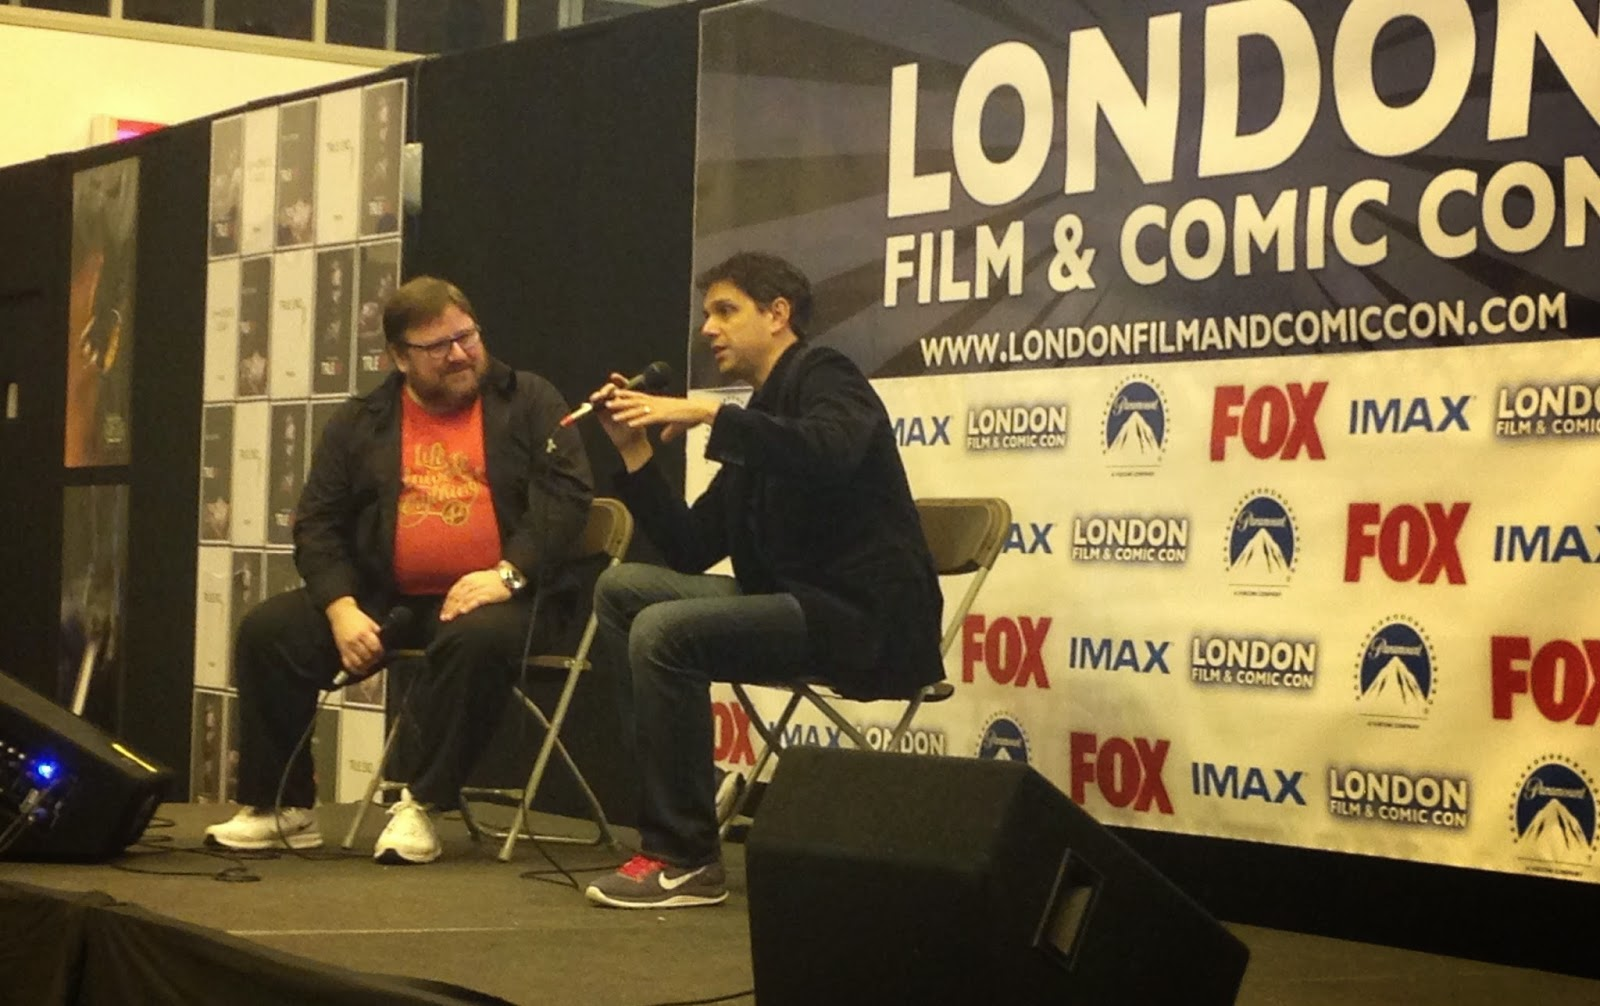 London Film & Comic Con Winter Ralph Macchio